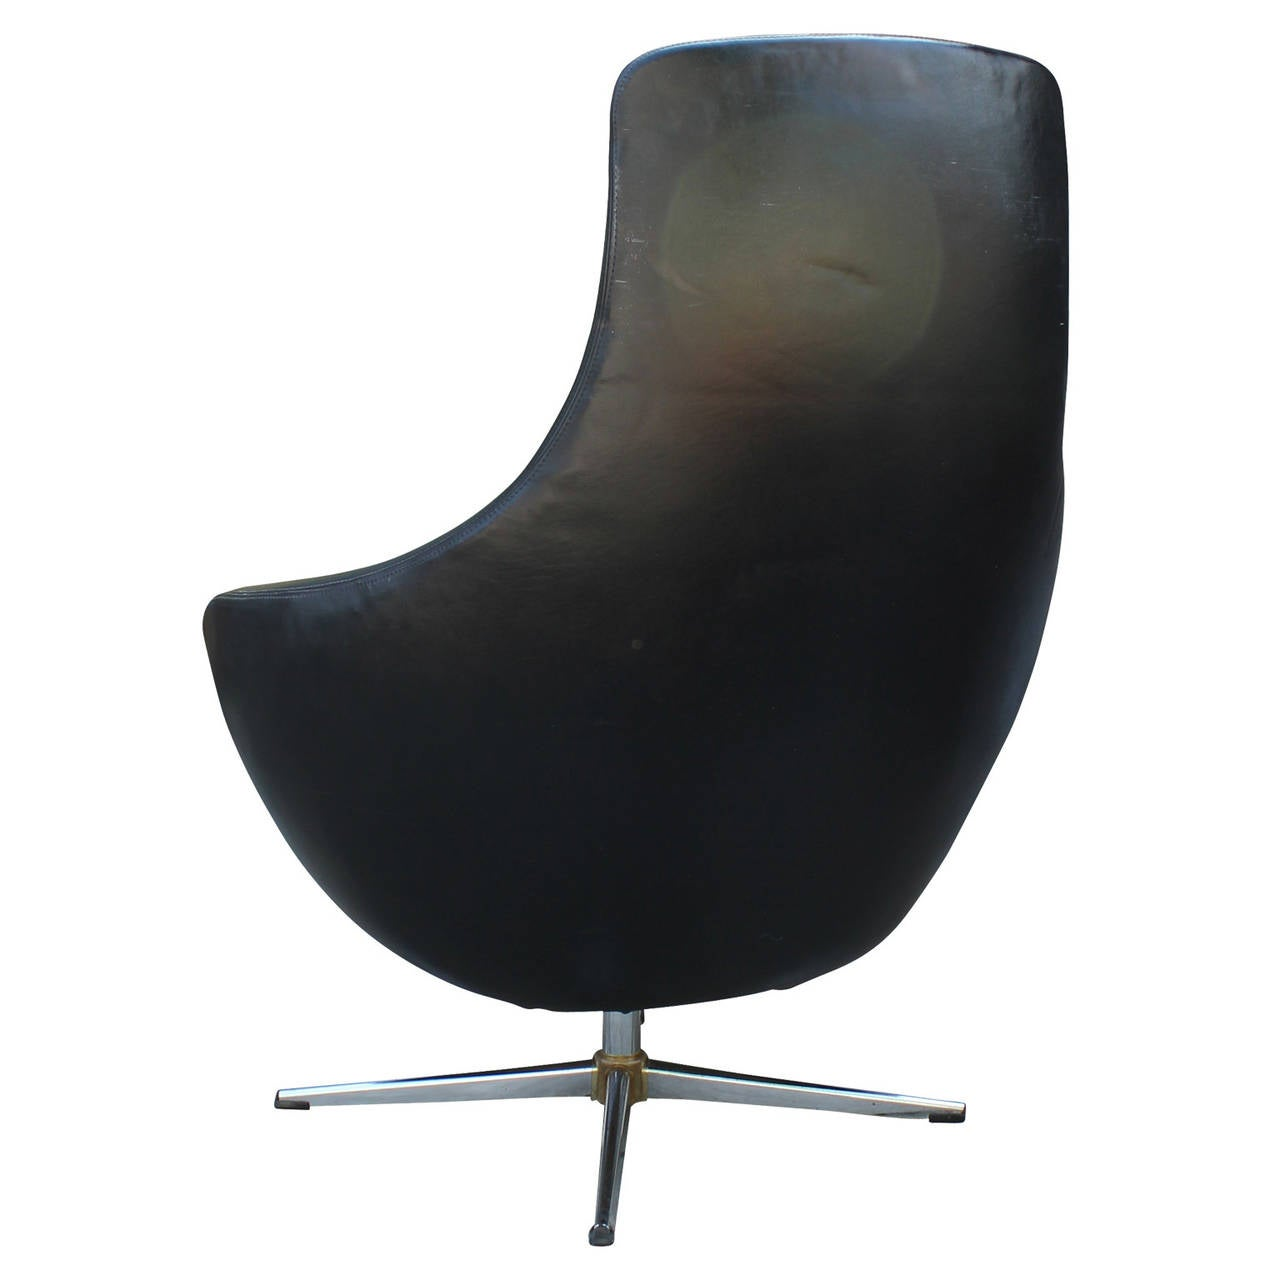 Mid Century Modern Overman Egg Style Swivel Chair In Black